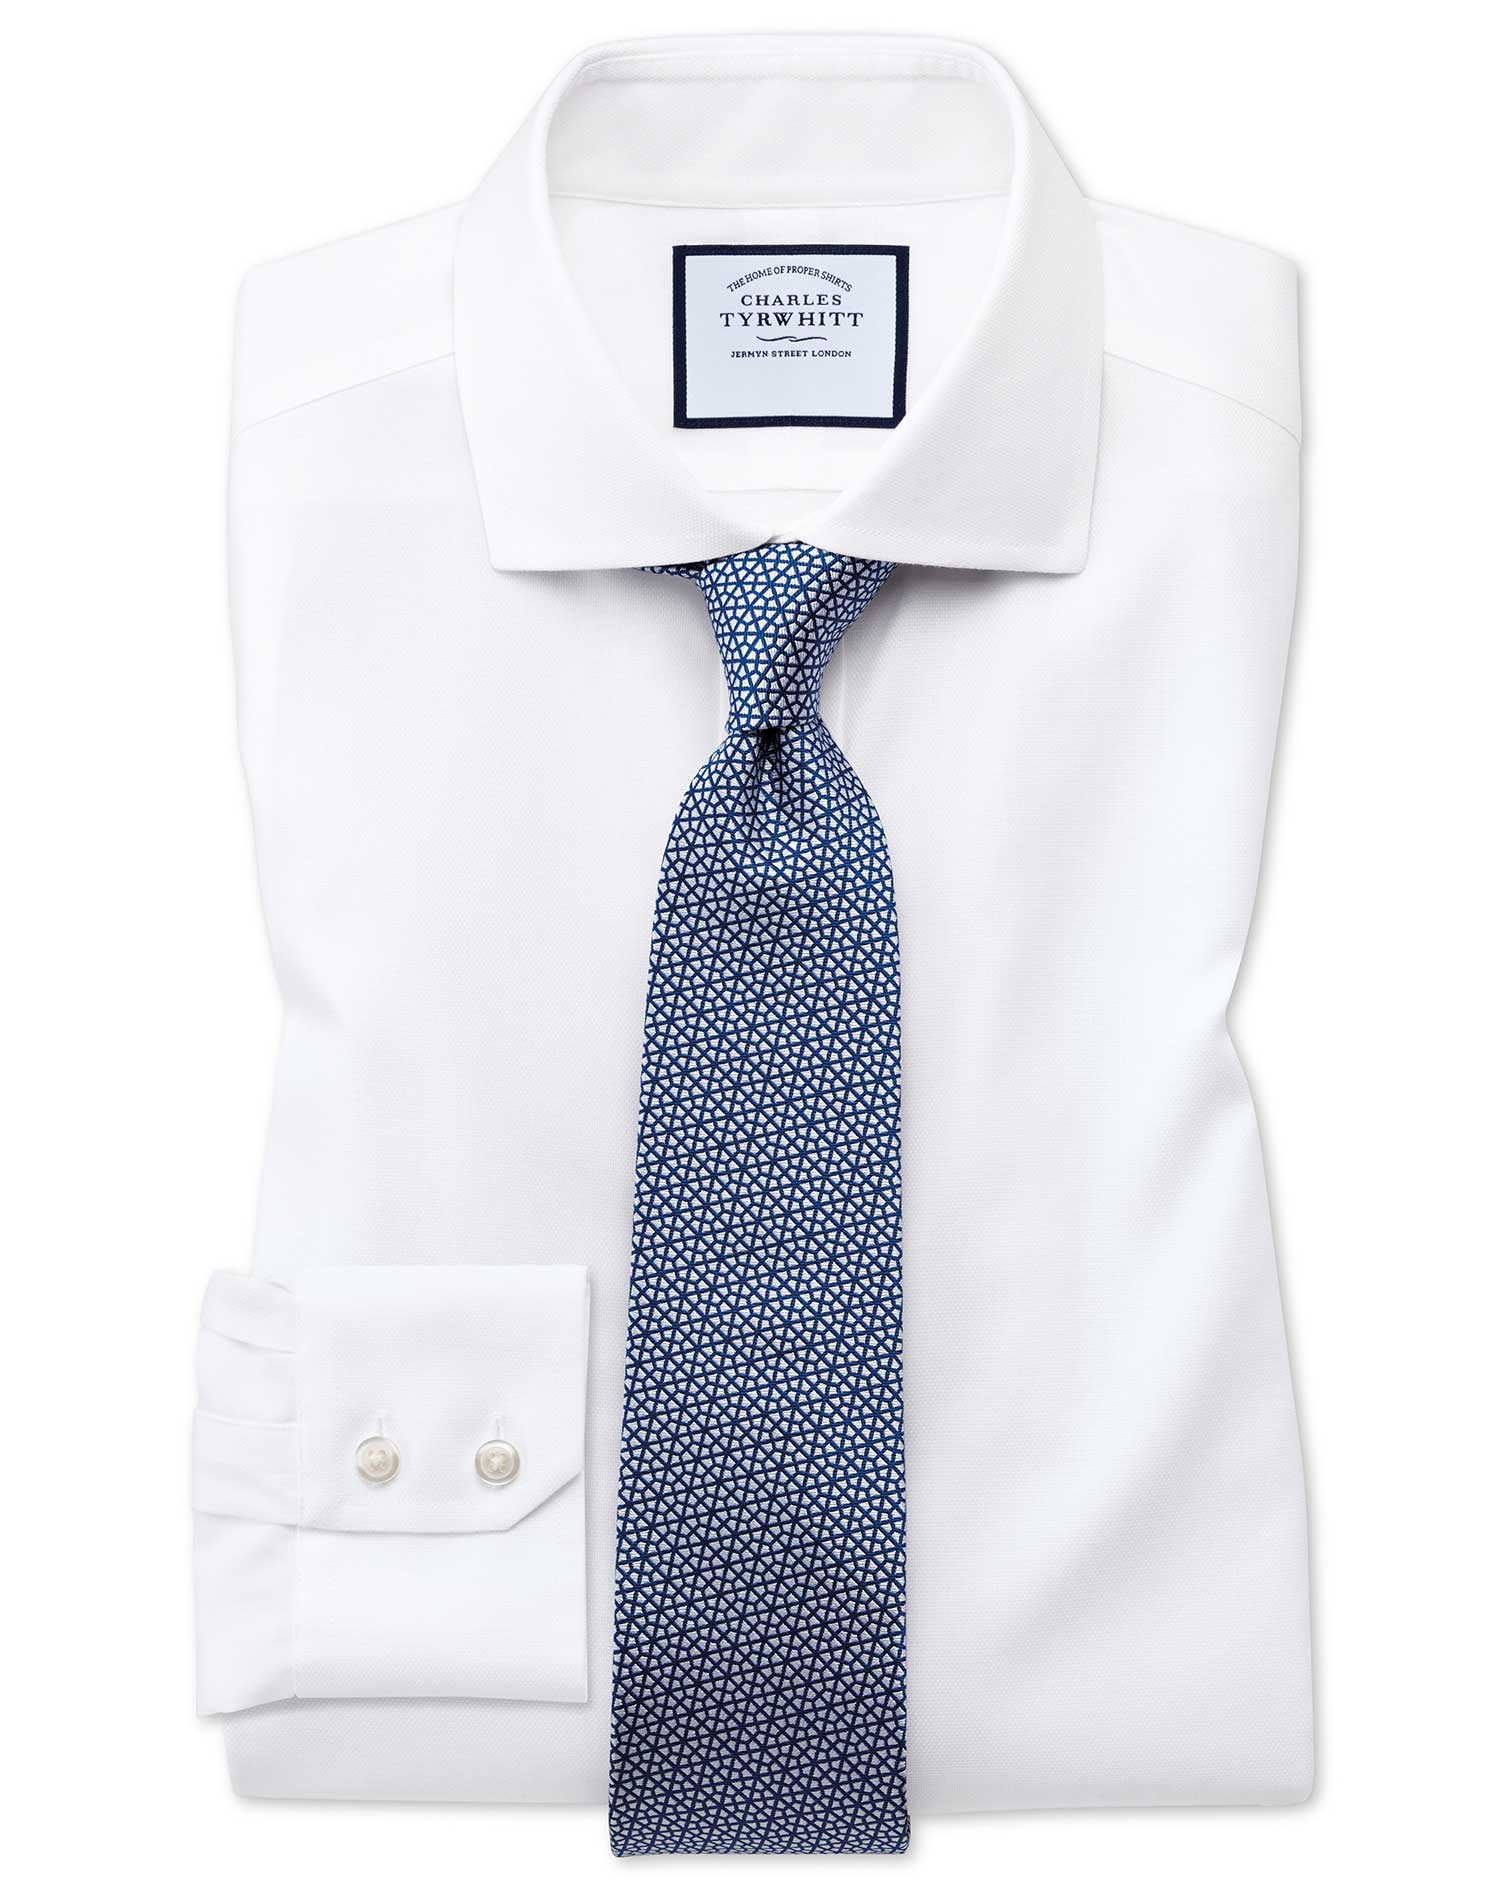 Extra Slim Fit Cutaway Non-Iron Cotton Stretch Oxford White Formal Shirt Single Cuff Size 17.5/35 by